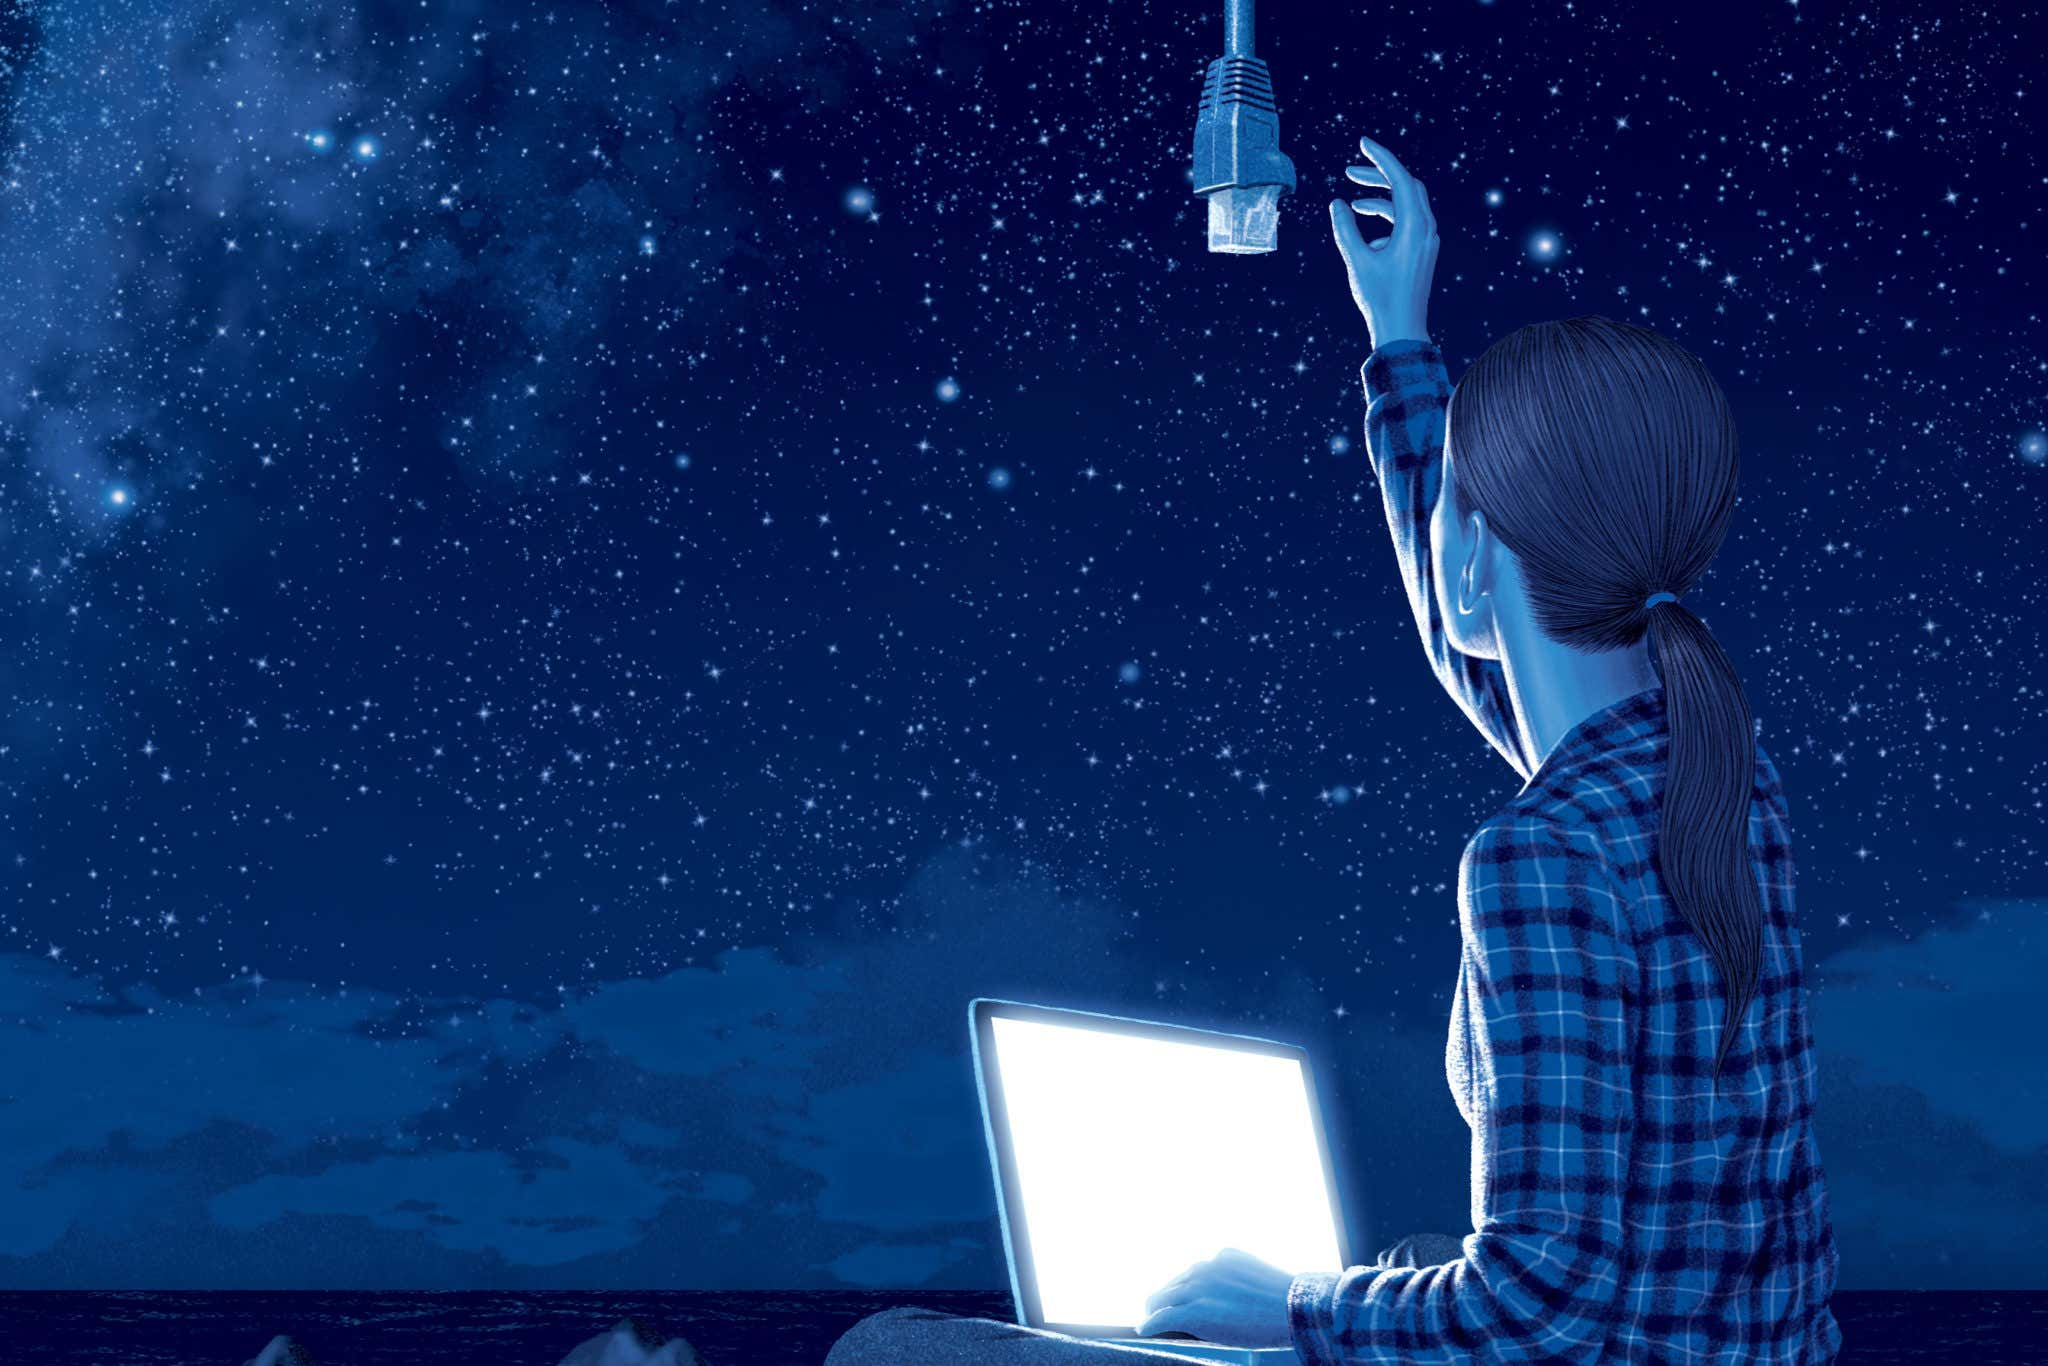 Convergence between the internet and space: challenges and opportunities